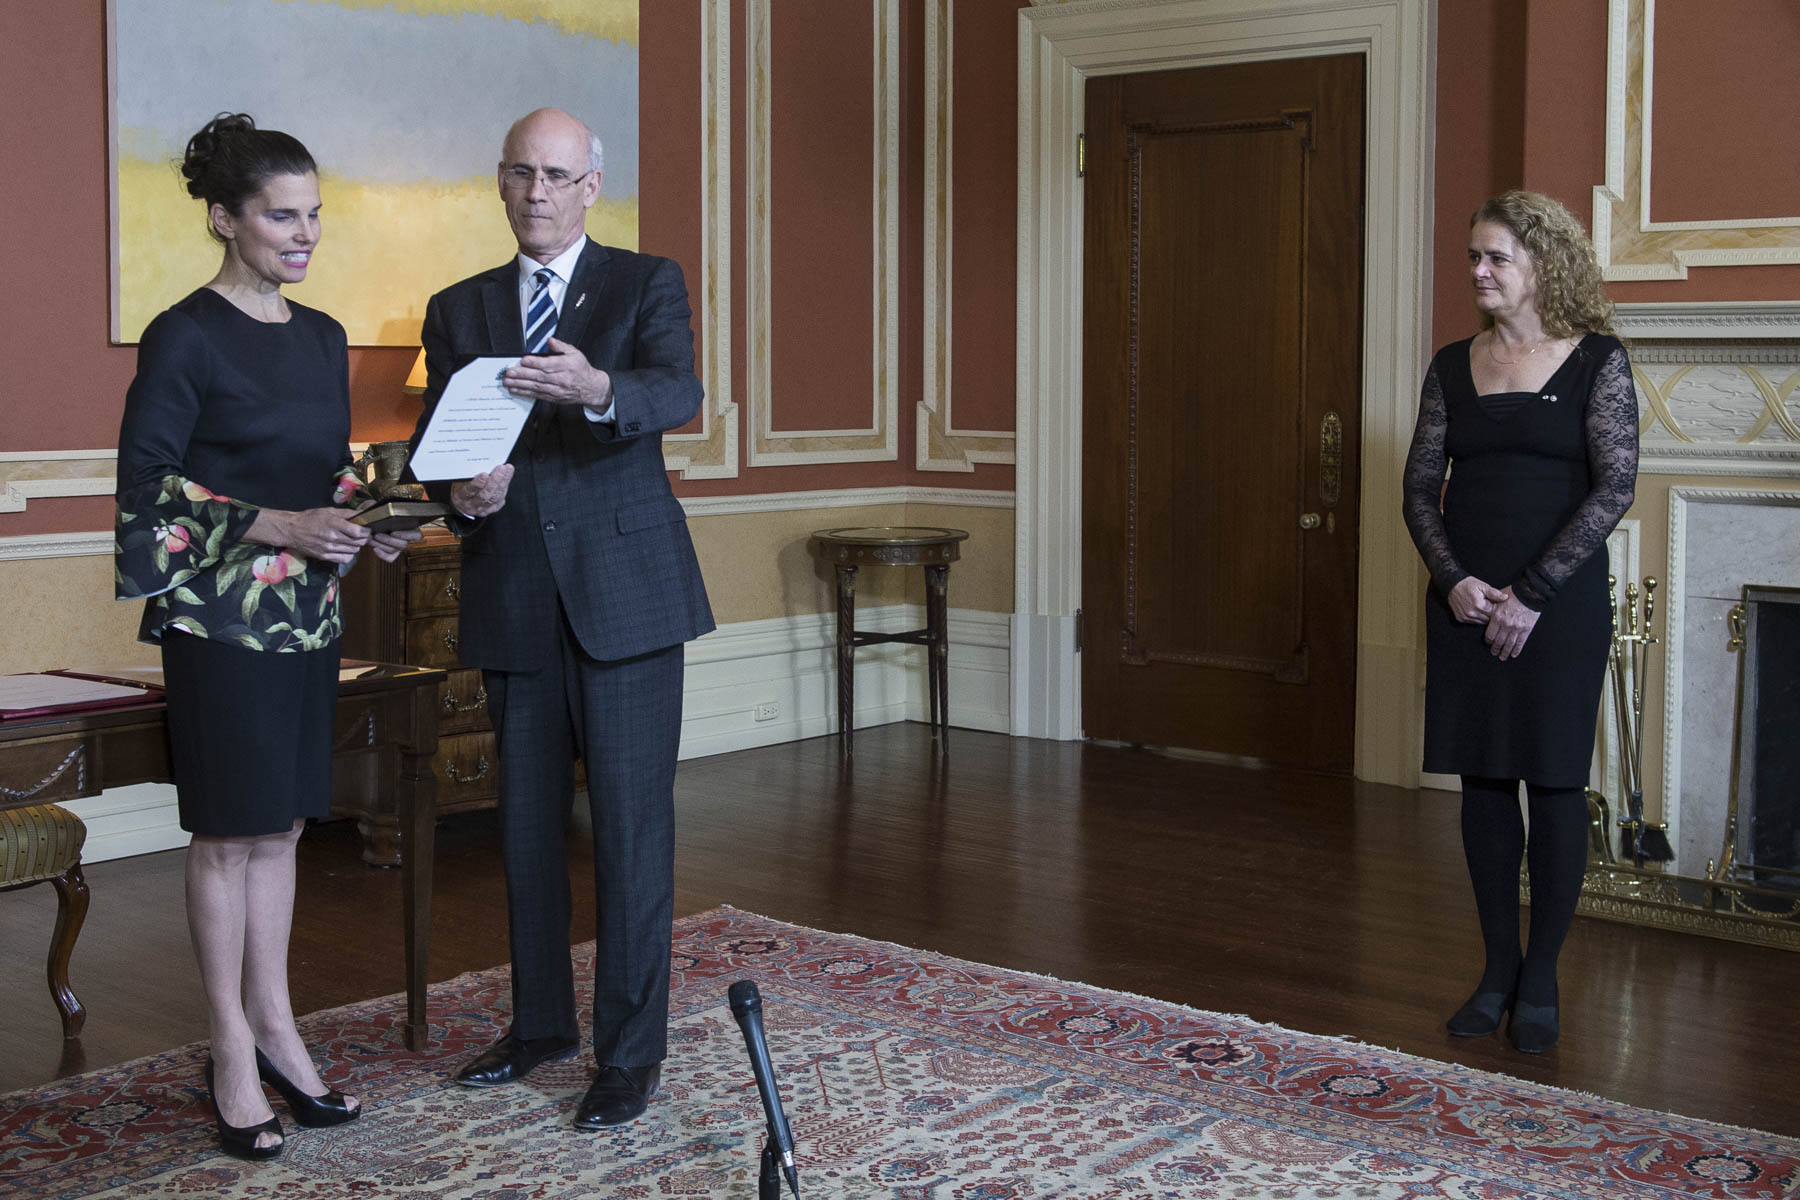 The Governor General presided over the swearing-in ceremony of the Honourable Kirsty Duncan, who now holds the title of Minister of Science and Minister of Sport and Persons with Disabilities.